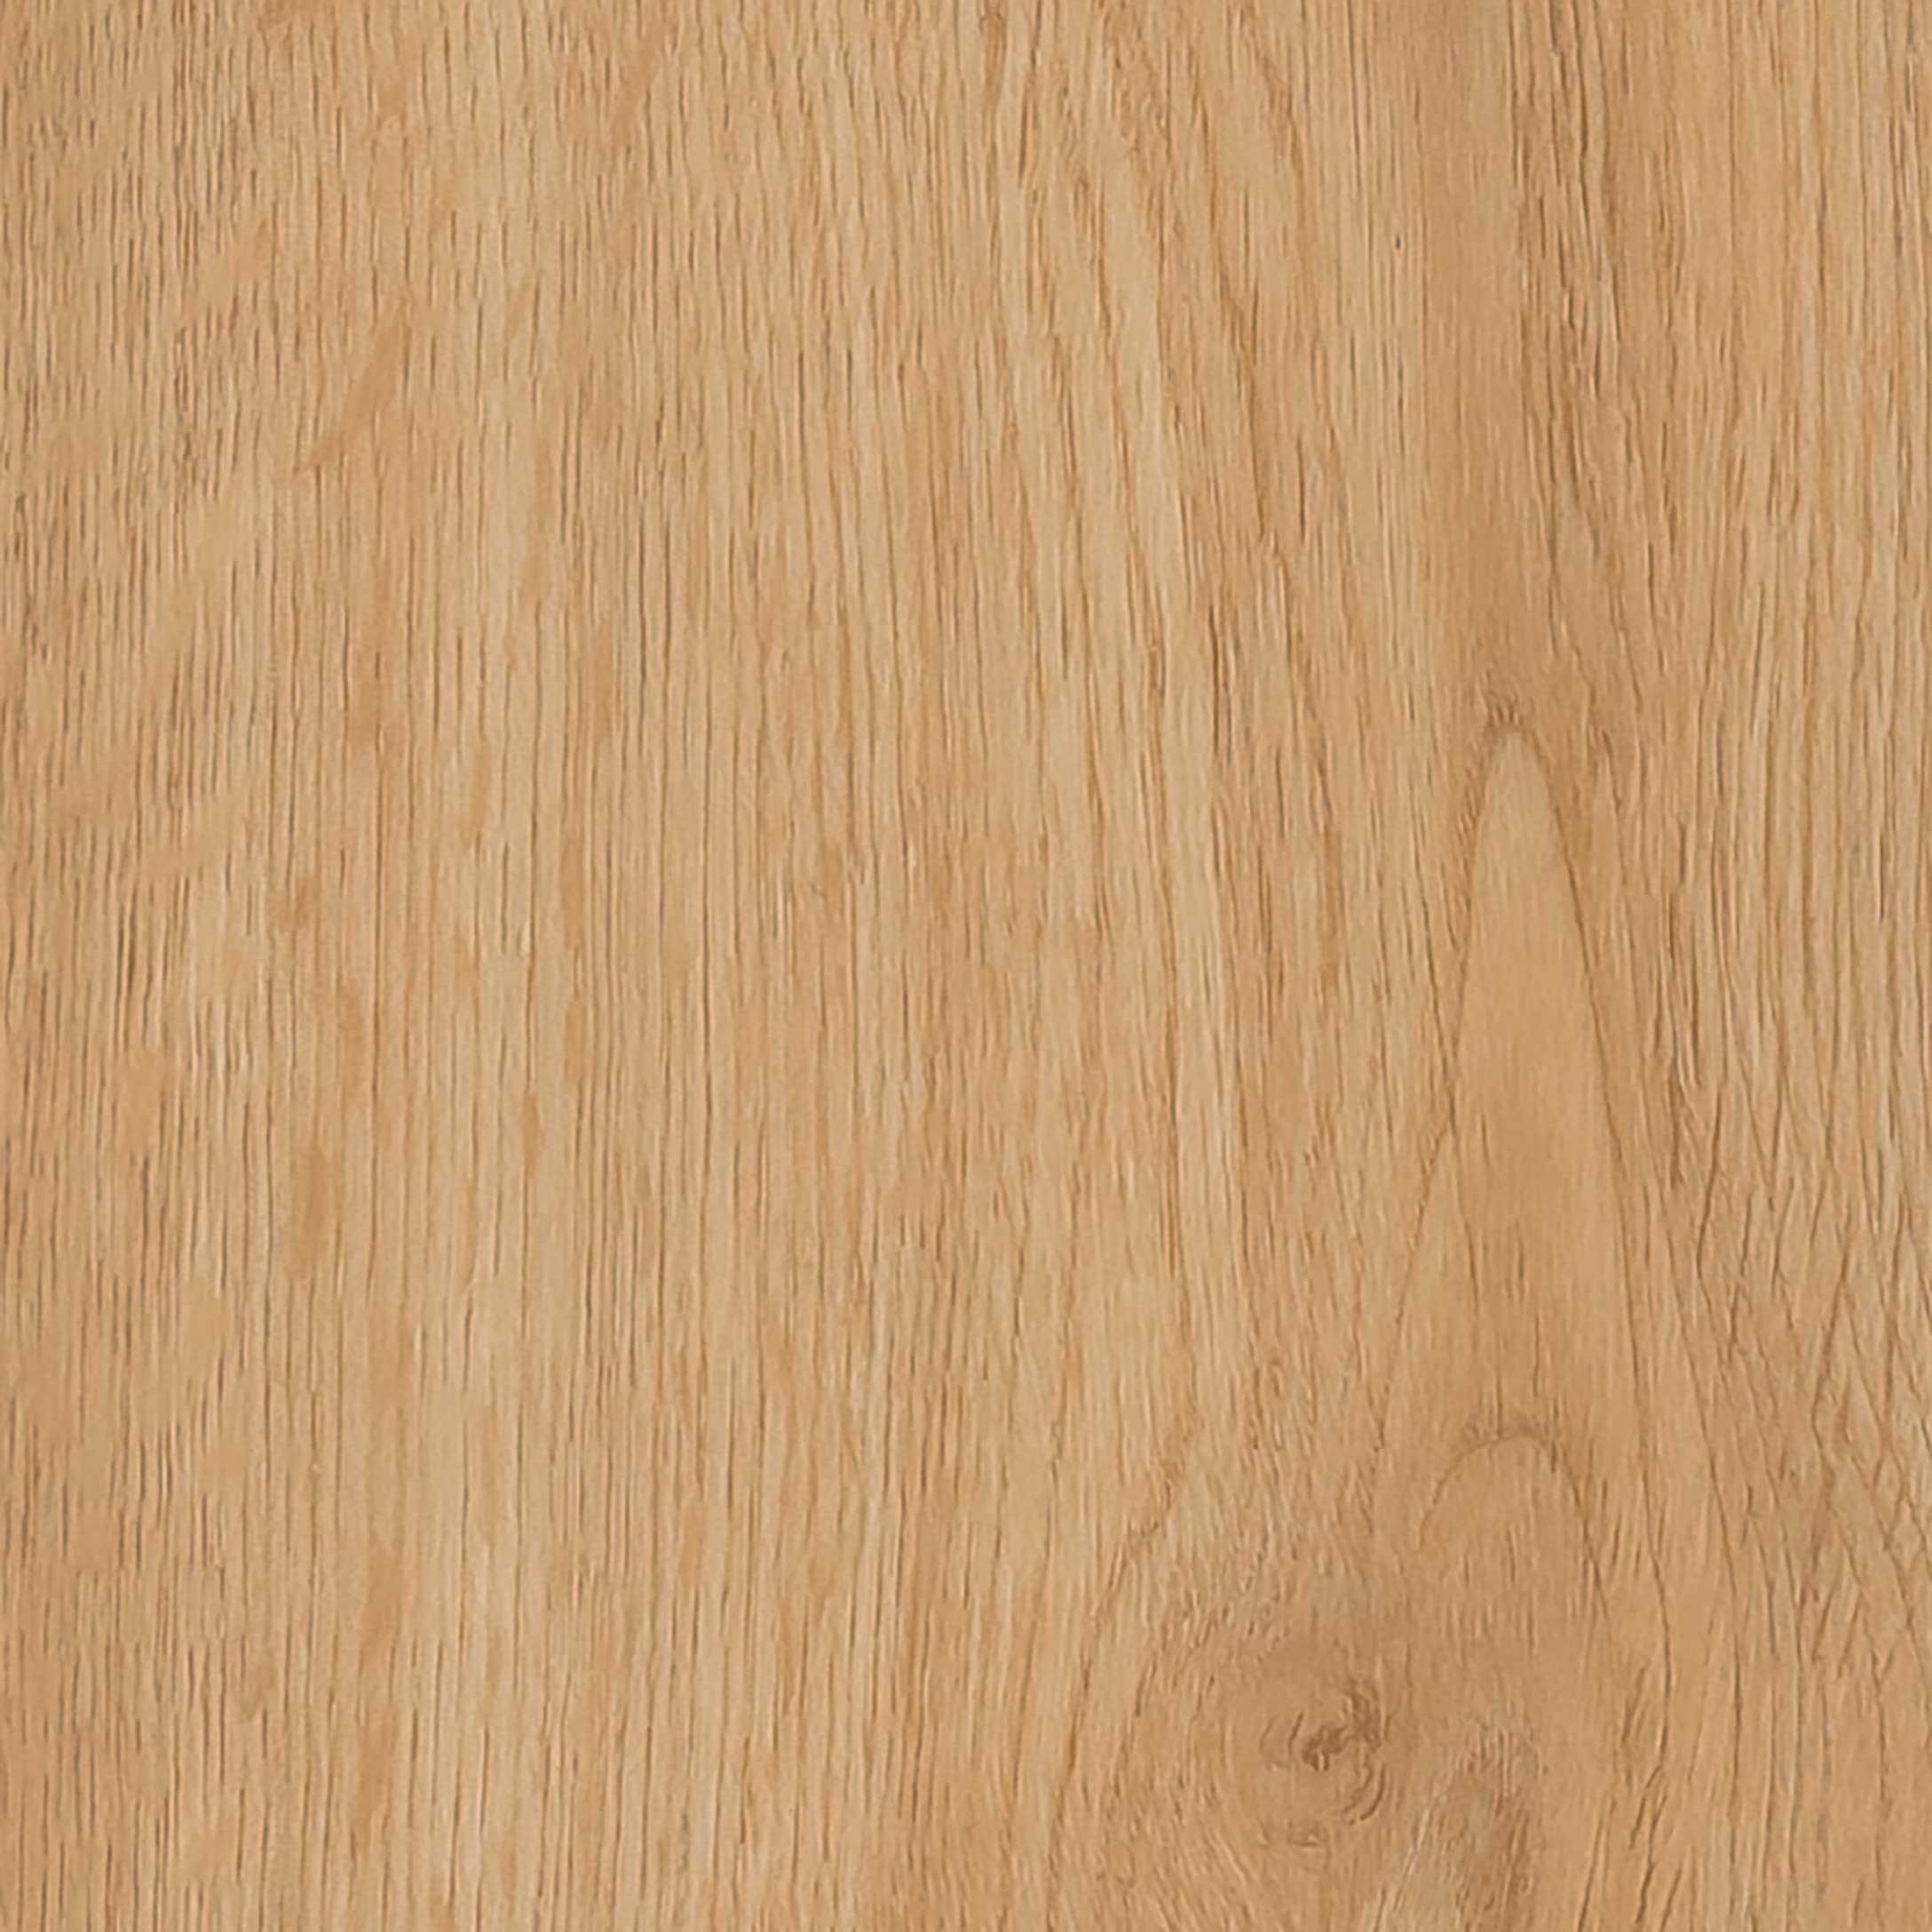 French Oak, blond 2869